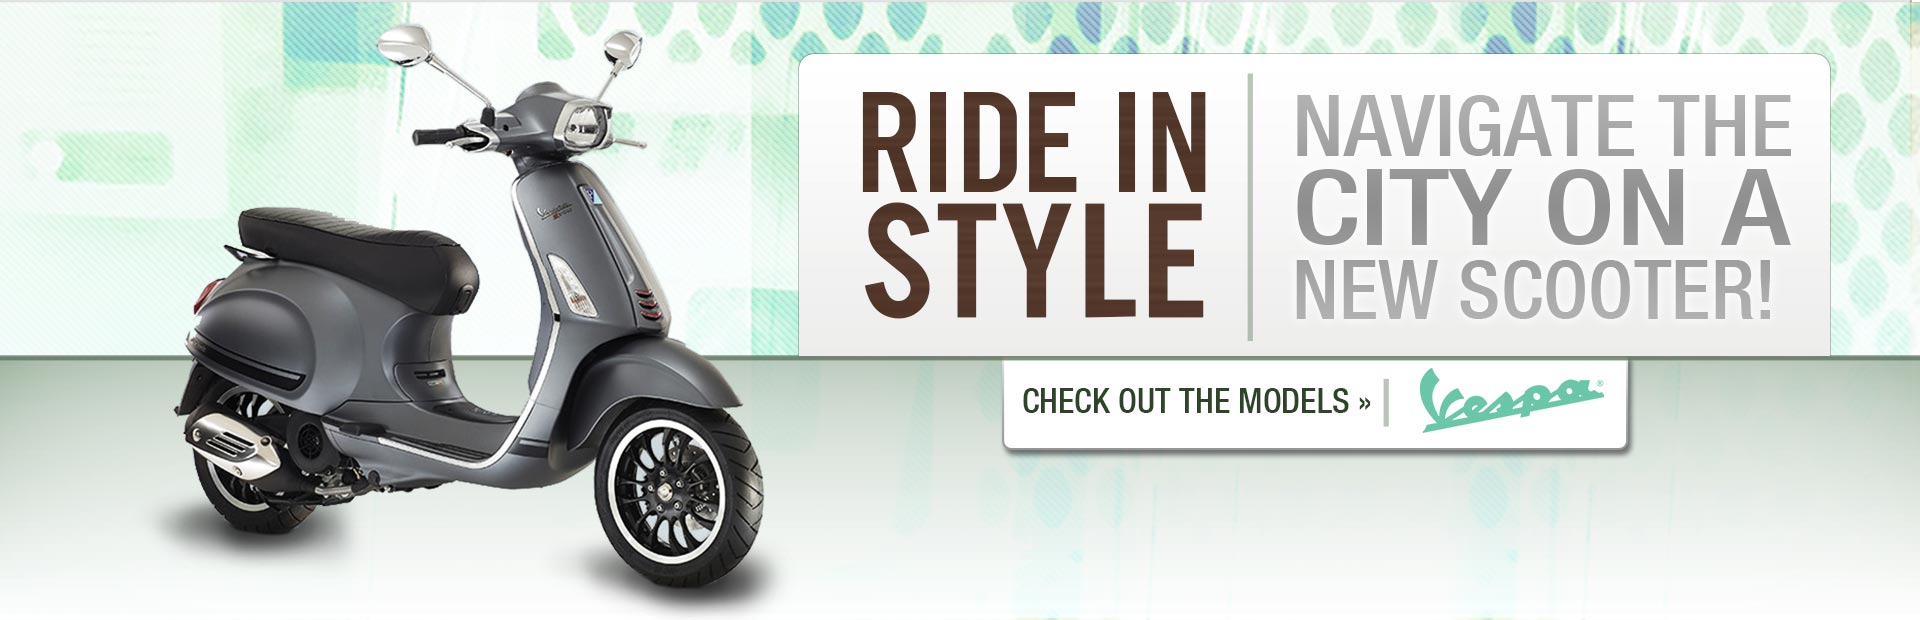 Ride in style and navigate the city on a new Vespa scooter! Click here to check out the models.